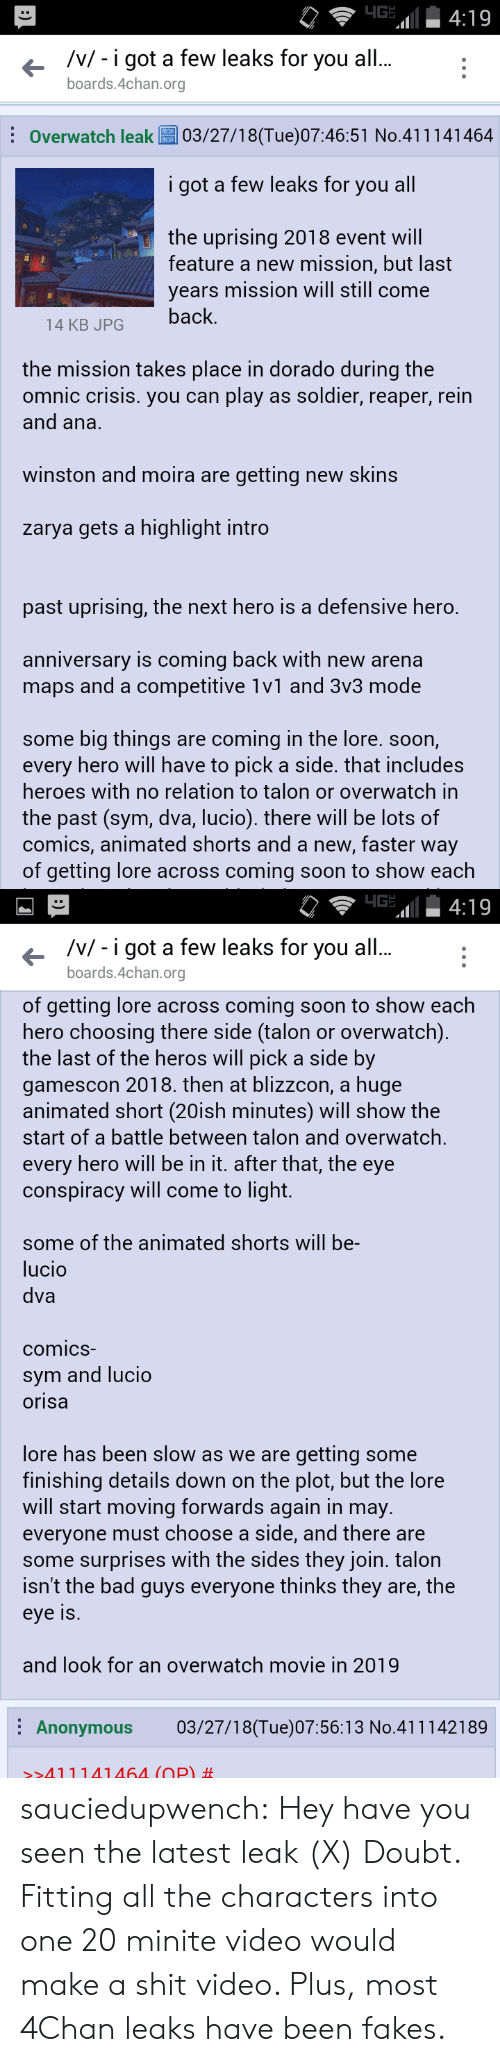 4chan, Bad, and Shit: /v/- i got a few leaks for you al  boards.4chan.org  Overwatch leak03/27/18(Tue)07:46:51 No.411141464  i got a few leaks for you all  the uprising 2018 event will  feature a new mission, but last  years mission will still come  14 KB JPGback  the mission takes place in dorado during the  omnic crisis. you can play as soldier, reaper, rein  and ana.  winston and moira are getting new skins  zarya gets a highlight intro  past uprising, the next hero is a defensive hero.  anniversary is coming back with new arena  maps and a competitive 1v1 and 3v3 mode  some big things are coming in the lore. soon,  every hero will have to pick a side. that includes  heroes with no relation to talon or overwatch in  the past (sym, dva, lucio). there will be lots of  comics, animated shorts and a new, faster way  of getting lore across coming soon to show each   /v/ - i got a few leaks for you all  boards.4chan.org  of getting lore across coming soon to show each  hero choosing there side (talon or overwatch)  the last of the heros will pick a side by  gamescon 2018. then at blizzcon, a huge  animated short (20ish minutes) will show the  start of a battle between talon and overwatch,  every hero will be in it. after that, the eye  conspiracy will come to light.  some of the animated shorts will be-  lucio  dva  comicS  sym and lucio  orisa  lore has been slow as we are getting some  finishing details down on the plot, but the lore  will start moving forwards again in may.  everyone must choose a side, and there are  some surprises with the sides they join. talon  isn't the bad guys everyone thinks they are, the  eye Is  and look for an overwatch movie in 2019  Anonymous 03/27/18(Tue)07:56:13 No.411142189  >>411141464 (OP) sauciedupwench:  Hey have you seen the latest leak  (X) Doubt. Fitting all the characters into one 20 minite video would make a shit video. Plus, most 4Chan leaks have been fakes.